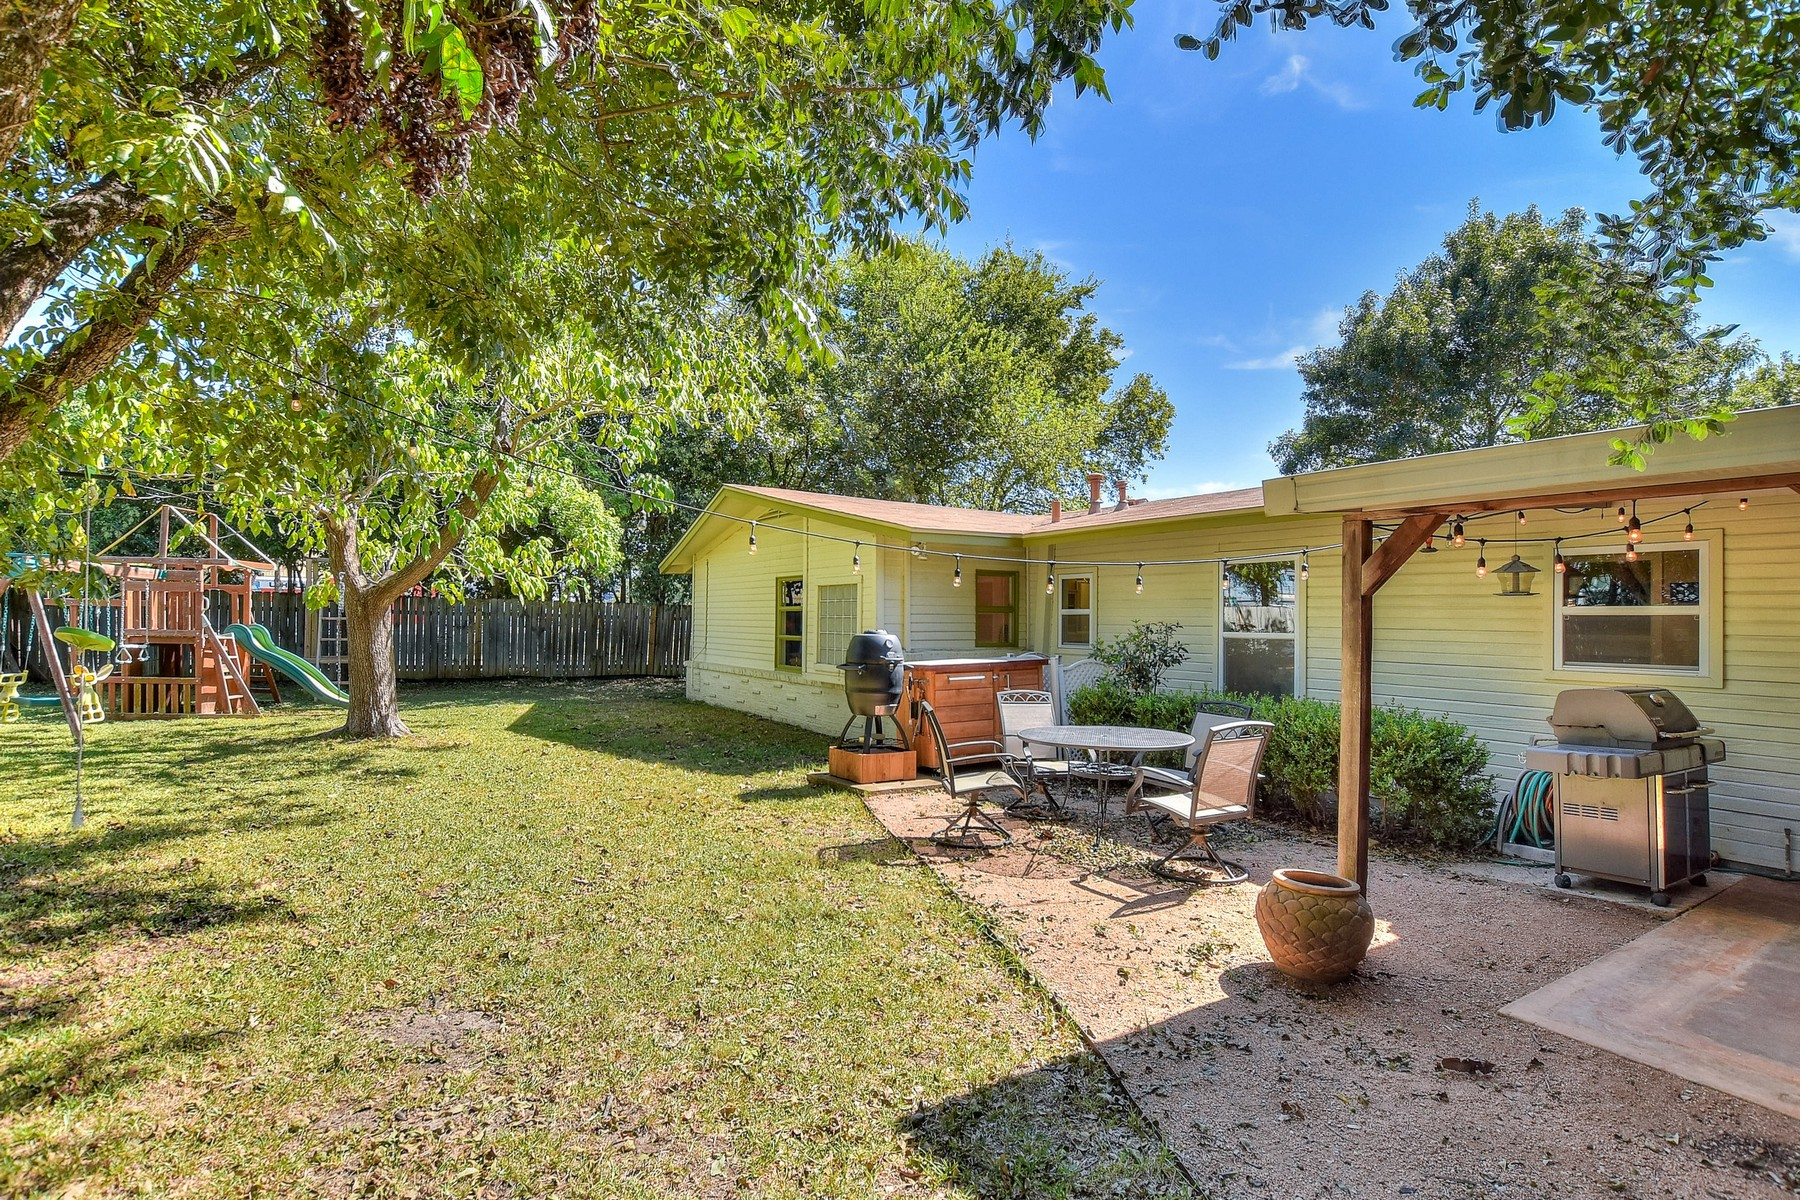 Additional photo for property listing at Wonderful Home on Corner Lot in Allandale 2500 Twin Oaks Dr Austin, Texas 78757 Estados Unidos